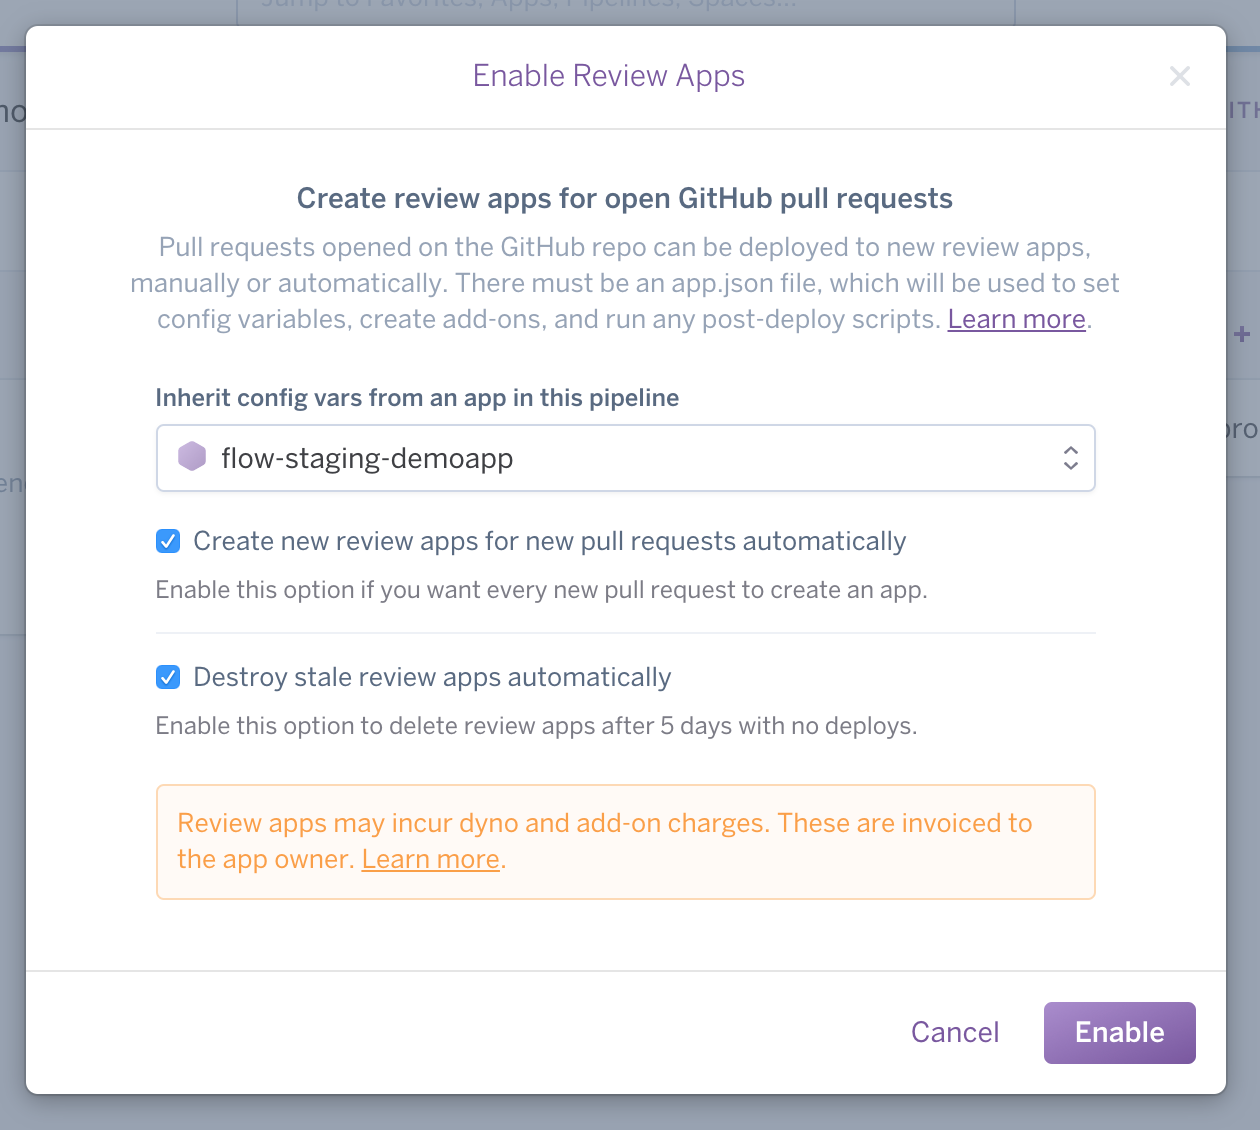 Enable review apps